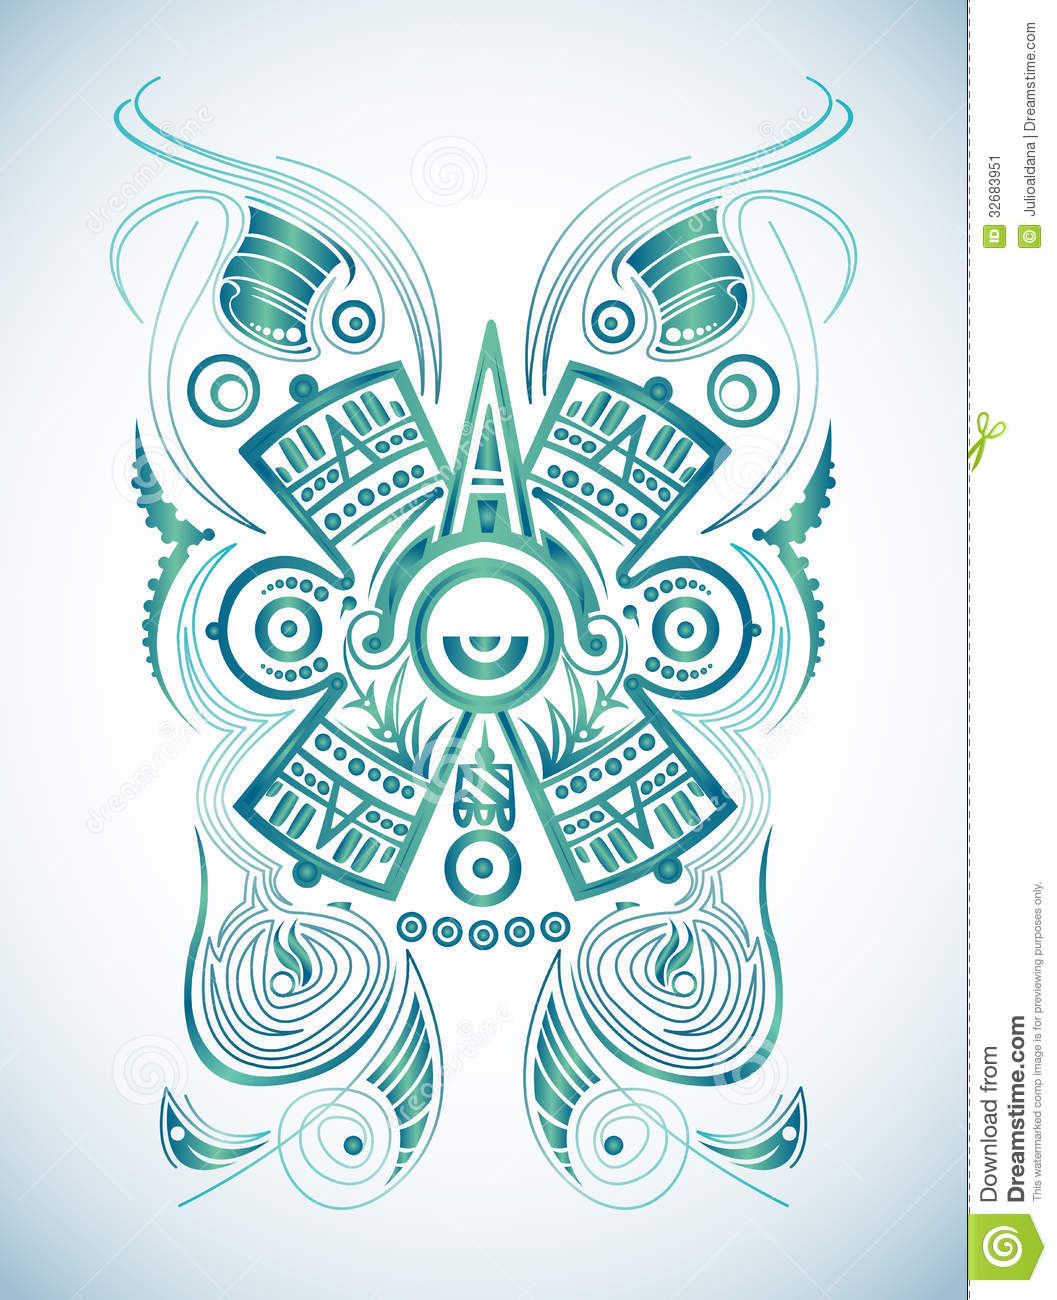 Stylized Mayan symbol - tattoo  vector illustration - surf style    Mayan Symbols Vector